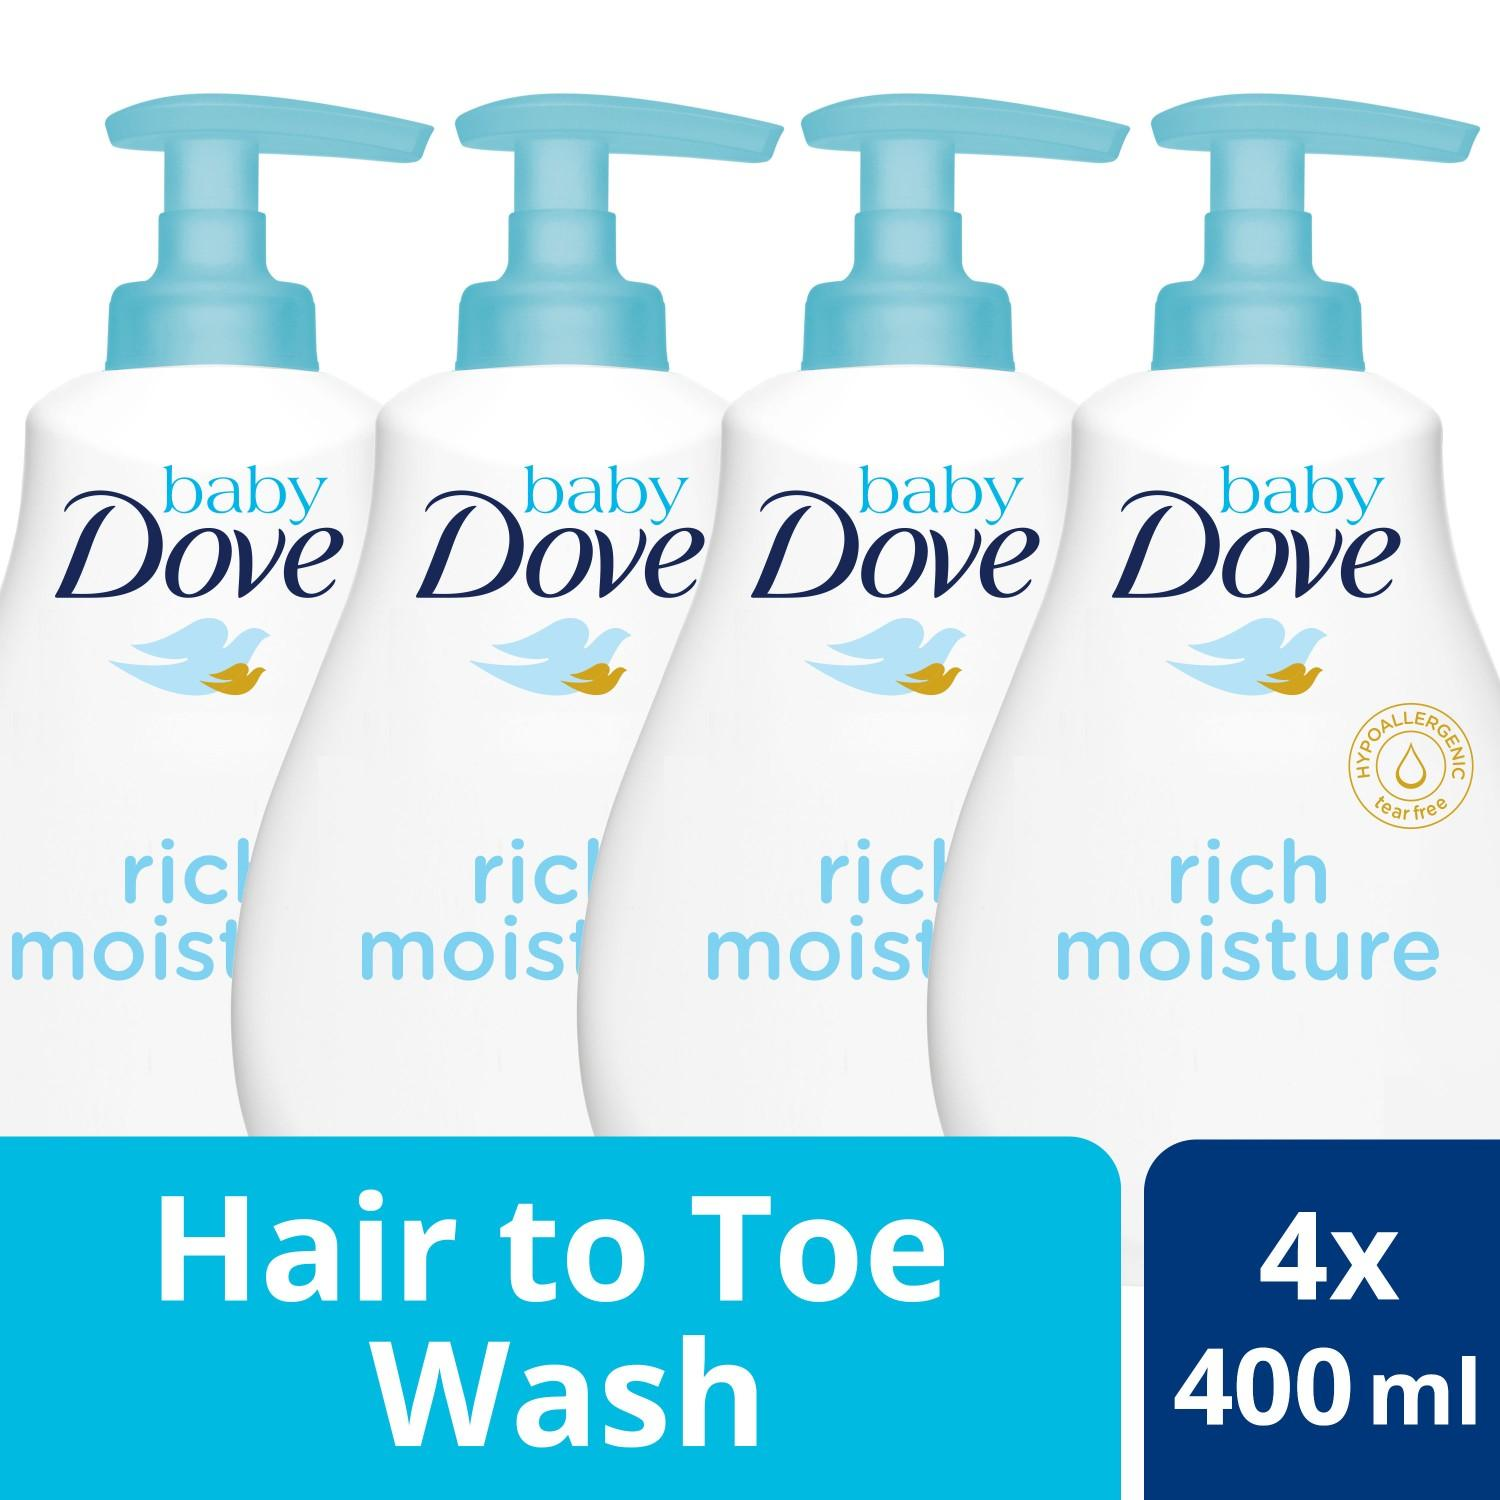 Baby Wash For Sale Body Online Brands Prices Reviews Pigeon Shampoo Chamomile 100ml Paraben Free Dove Hair To Toe Rich Moisture 4x400ml P999 Bundle Pack